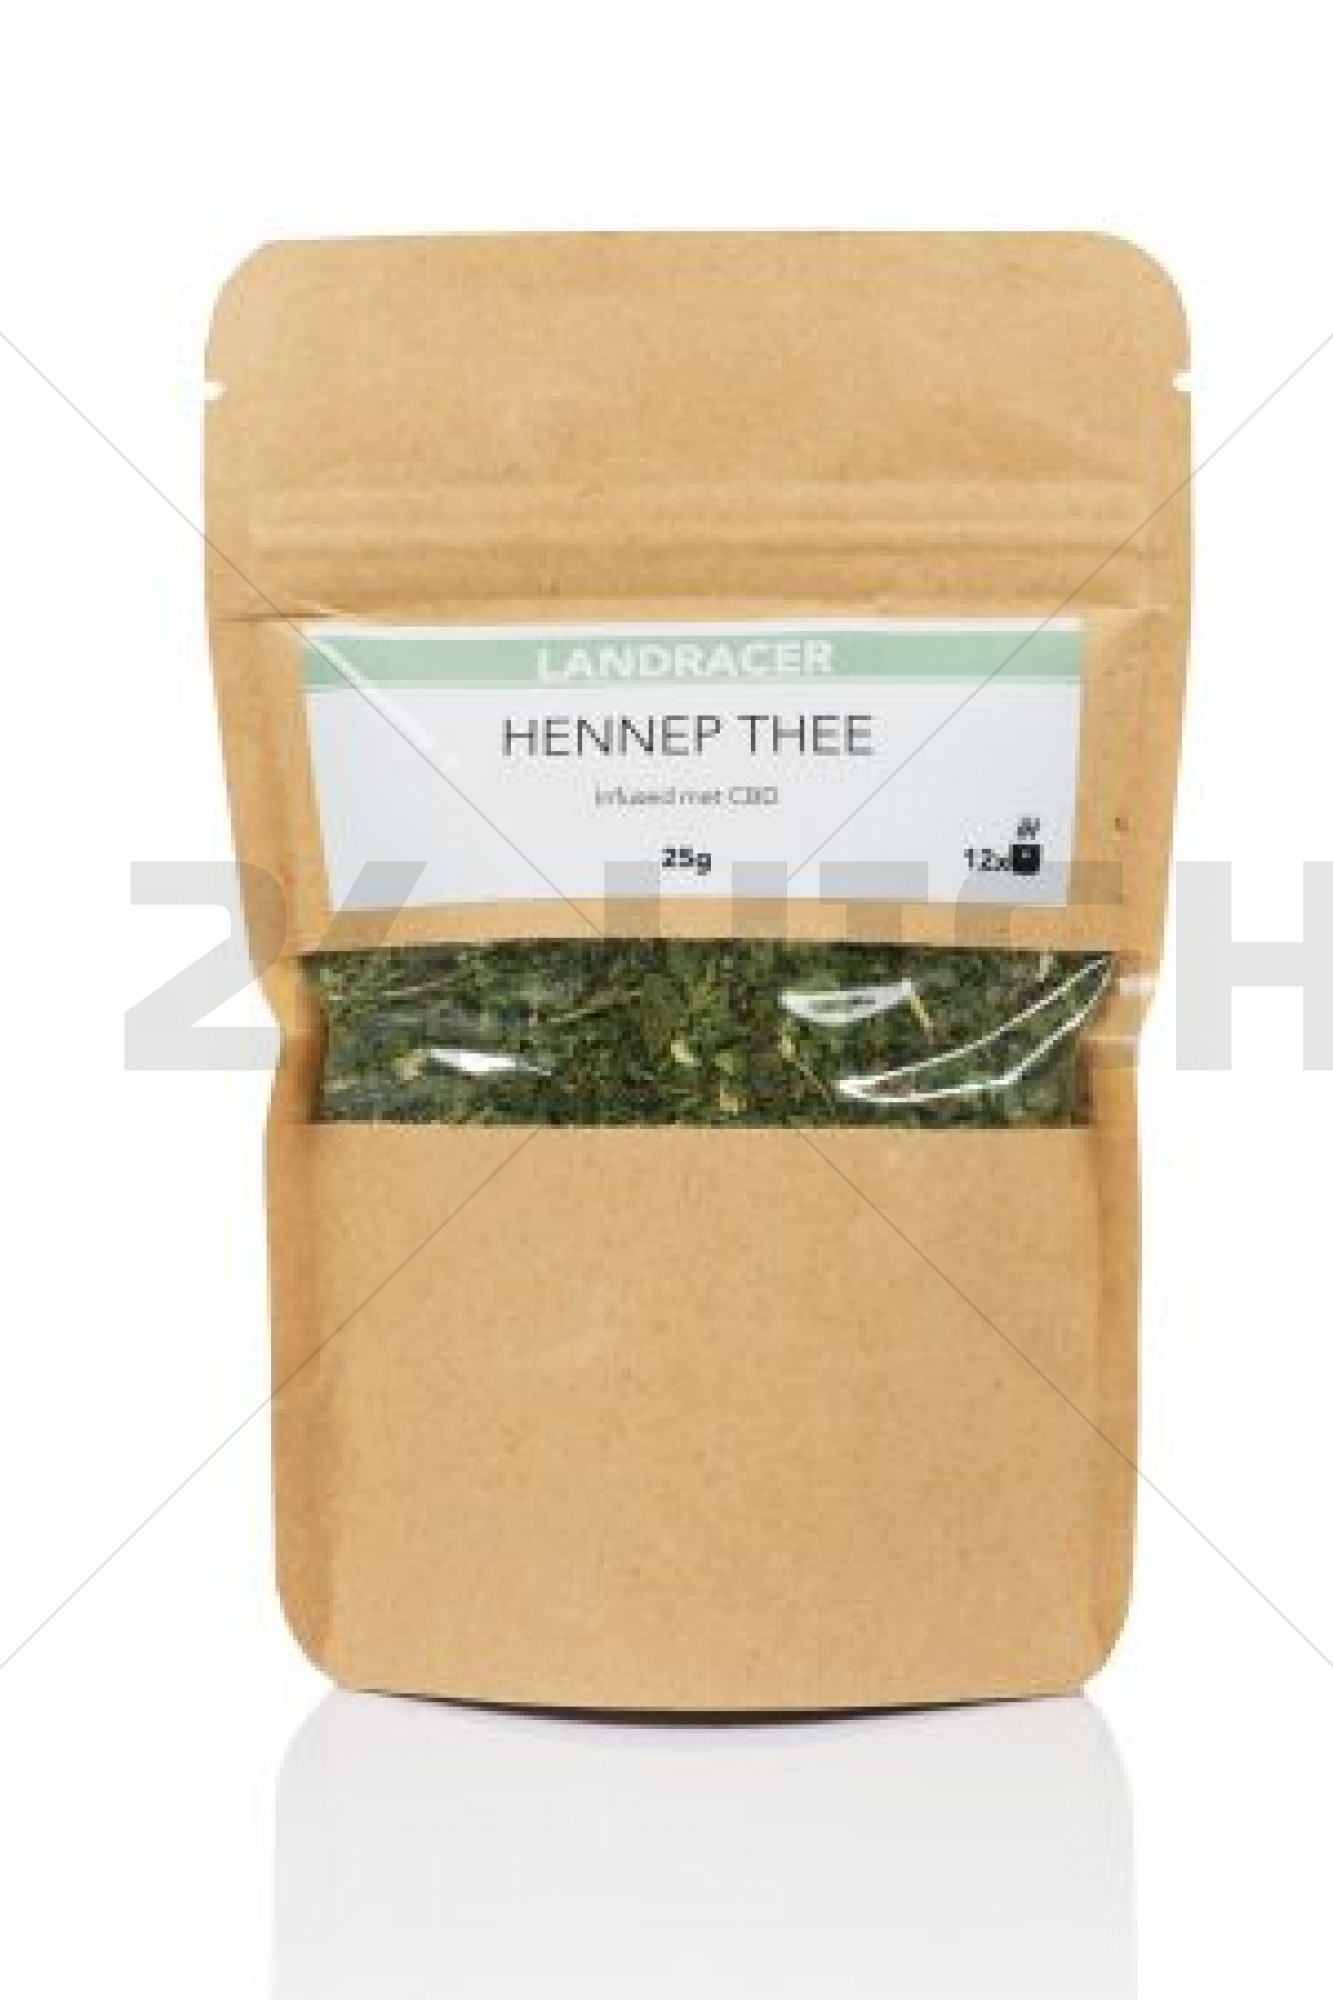 Landracer Hemp tea infused with Cannabidiol